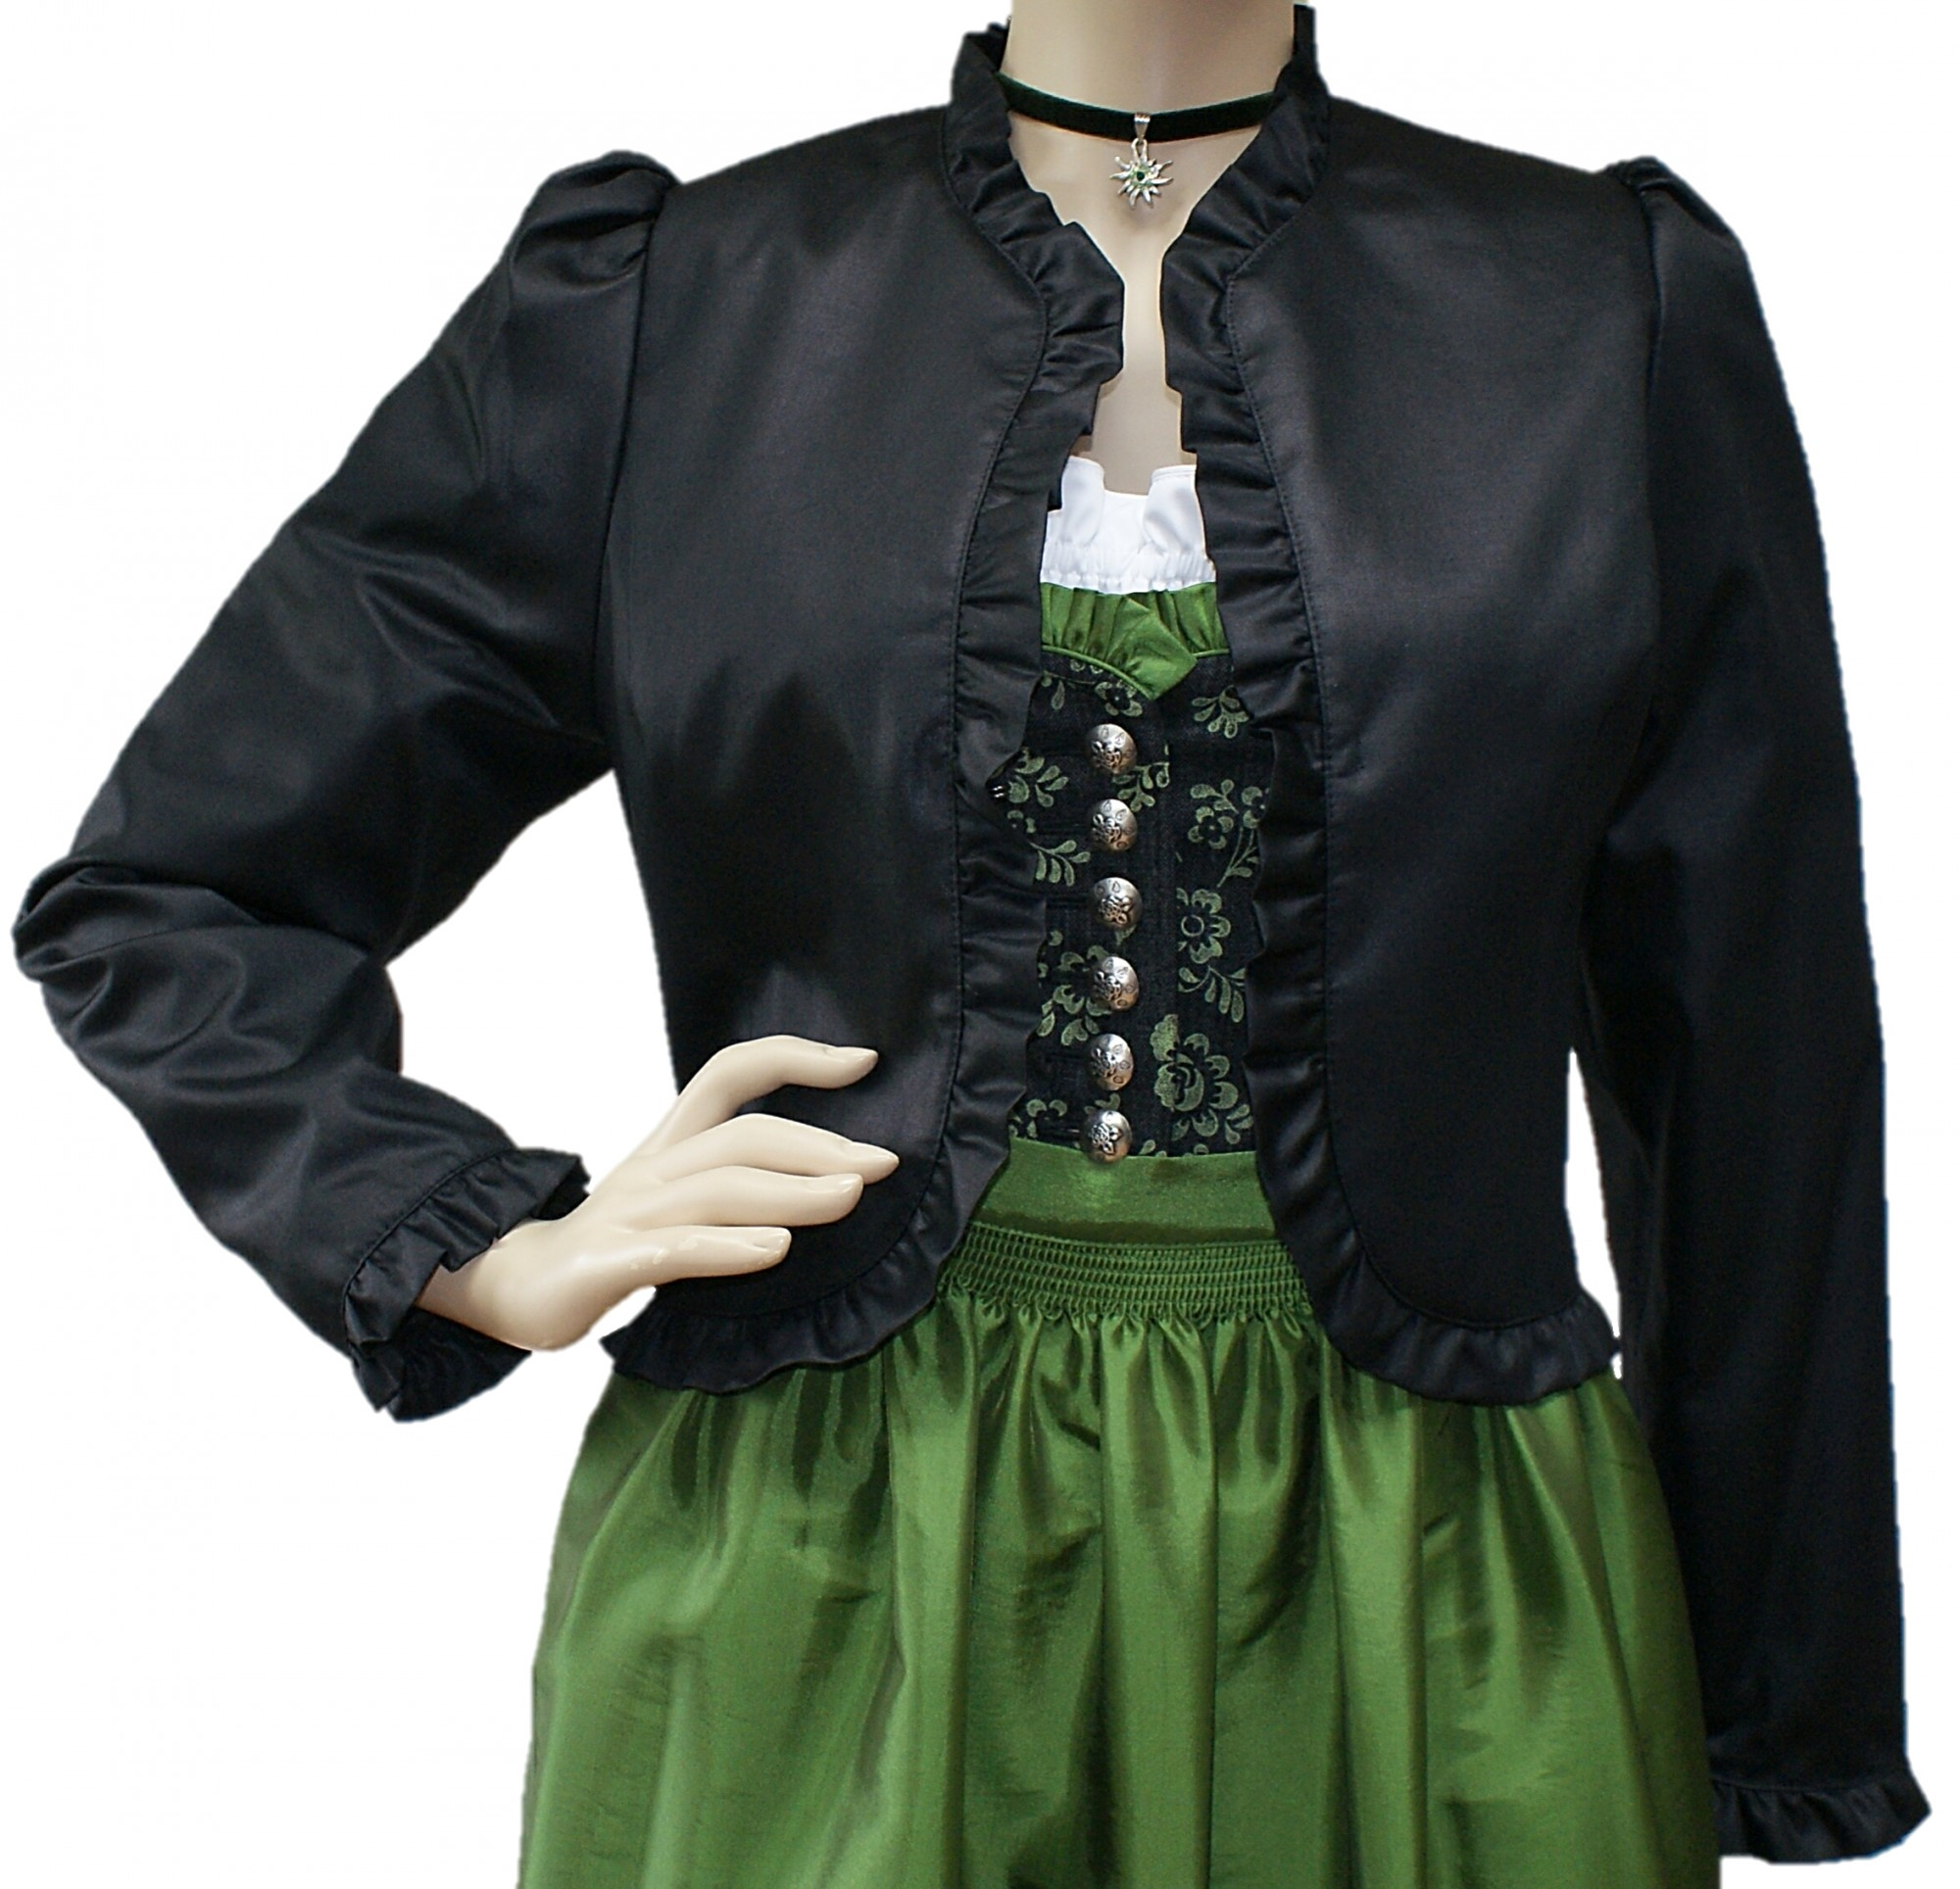 34 50 dirndljacke dirndl jacke spenzer bolero. Black Bedroom Furniture Sets. Home Design Ideas